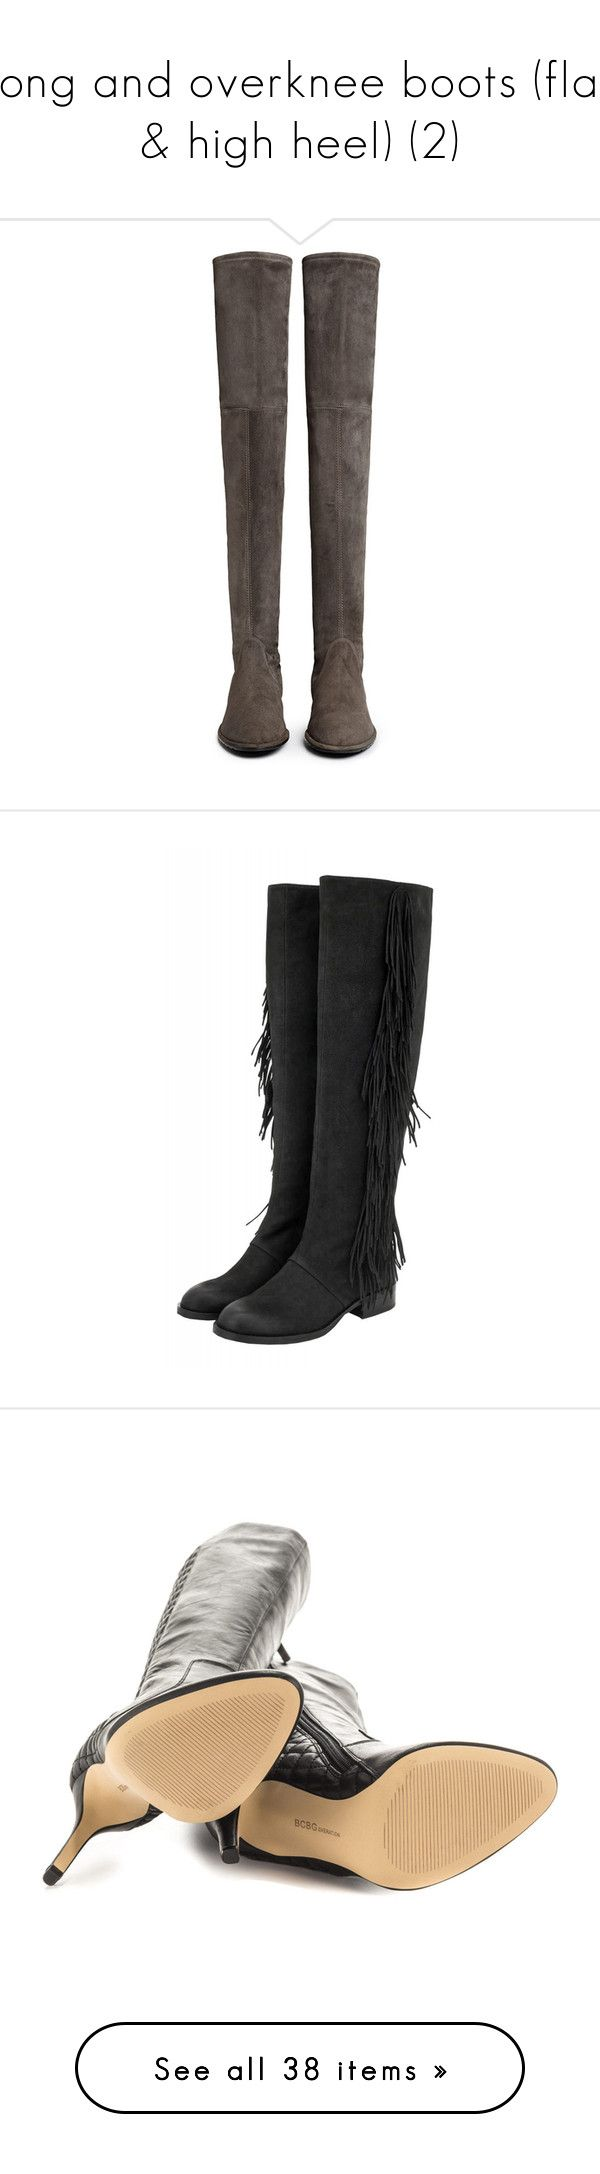 """""""long and overknee boots (flat & high heel) (2)"""" by bonadea007 ❤ liked on Polyvore featuring shoes, boots, stretch boots, stuart weitzman boots, over the knee boots, suede boots, over the knee stretch boots, flat knee high boots, sam edelman boots and black boots"""